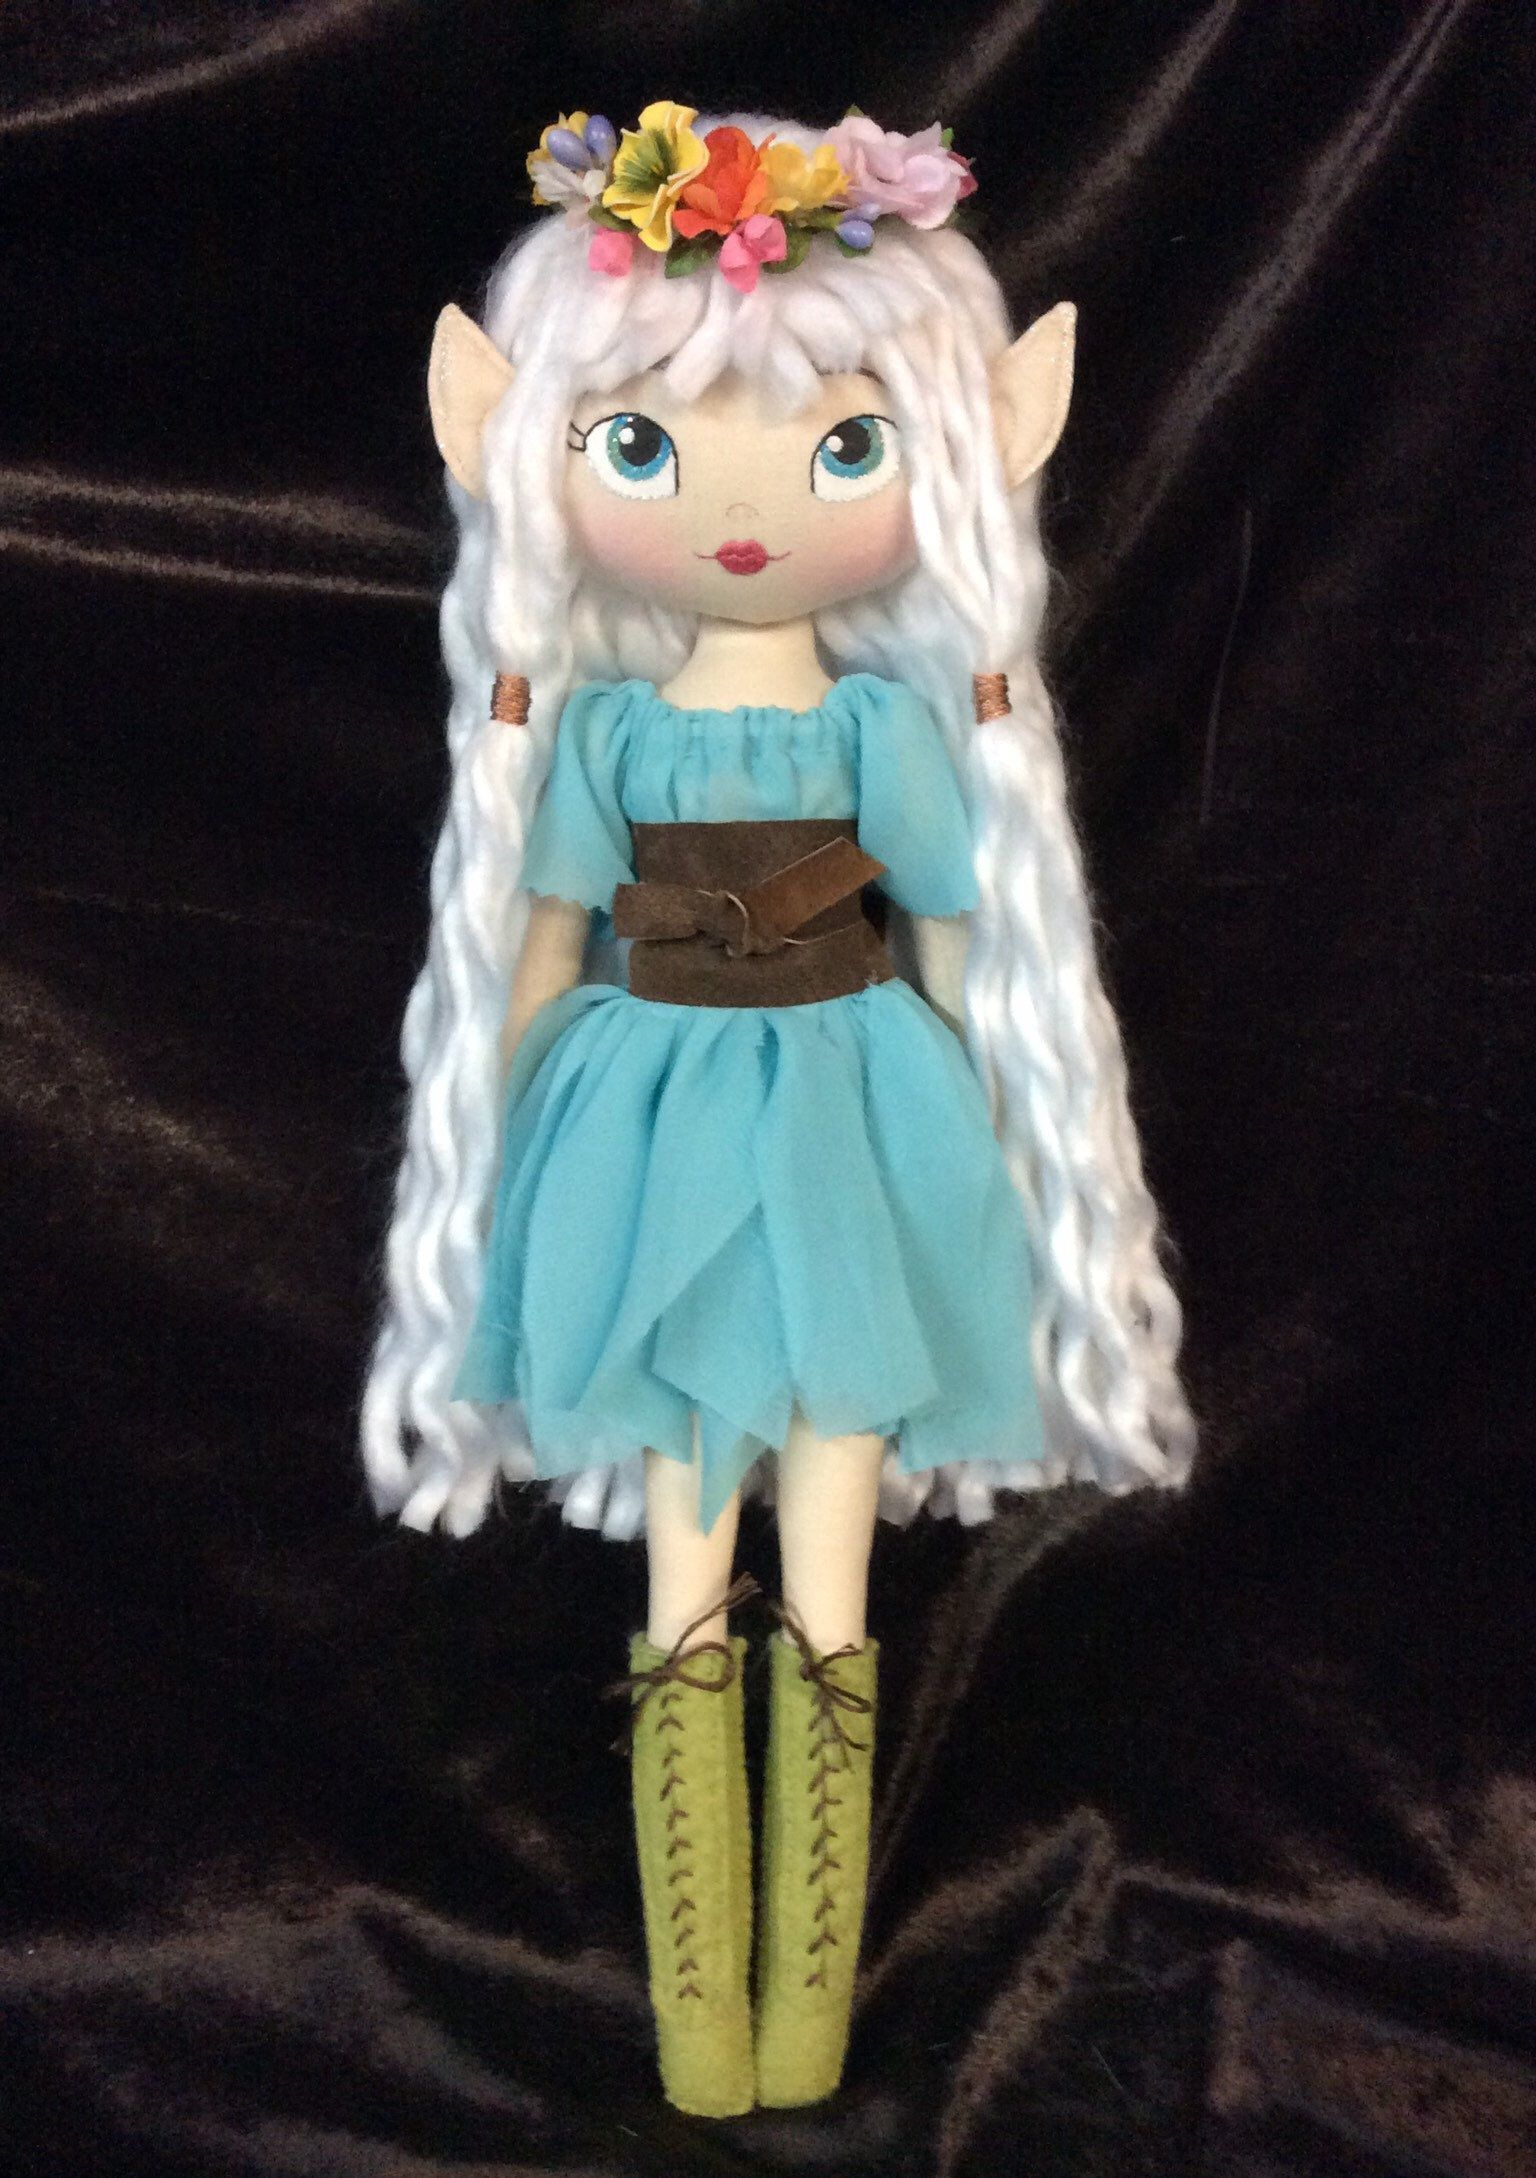 Beautiful Elf Doll (With images) Elf doll, Crochet doll